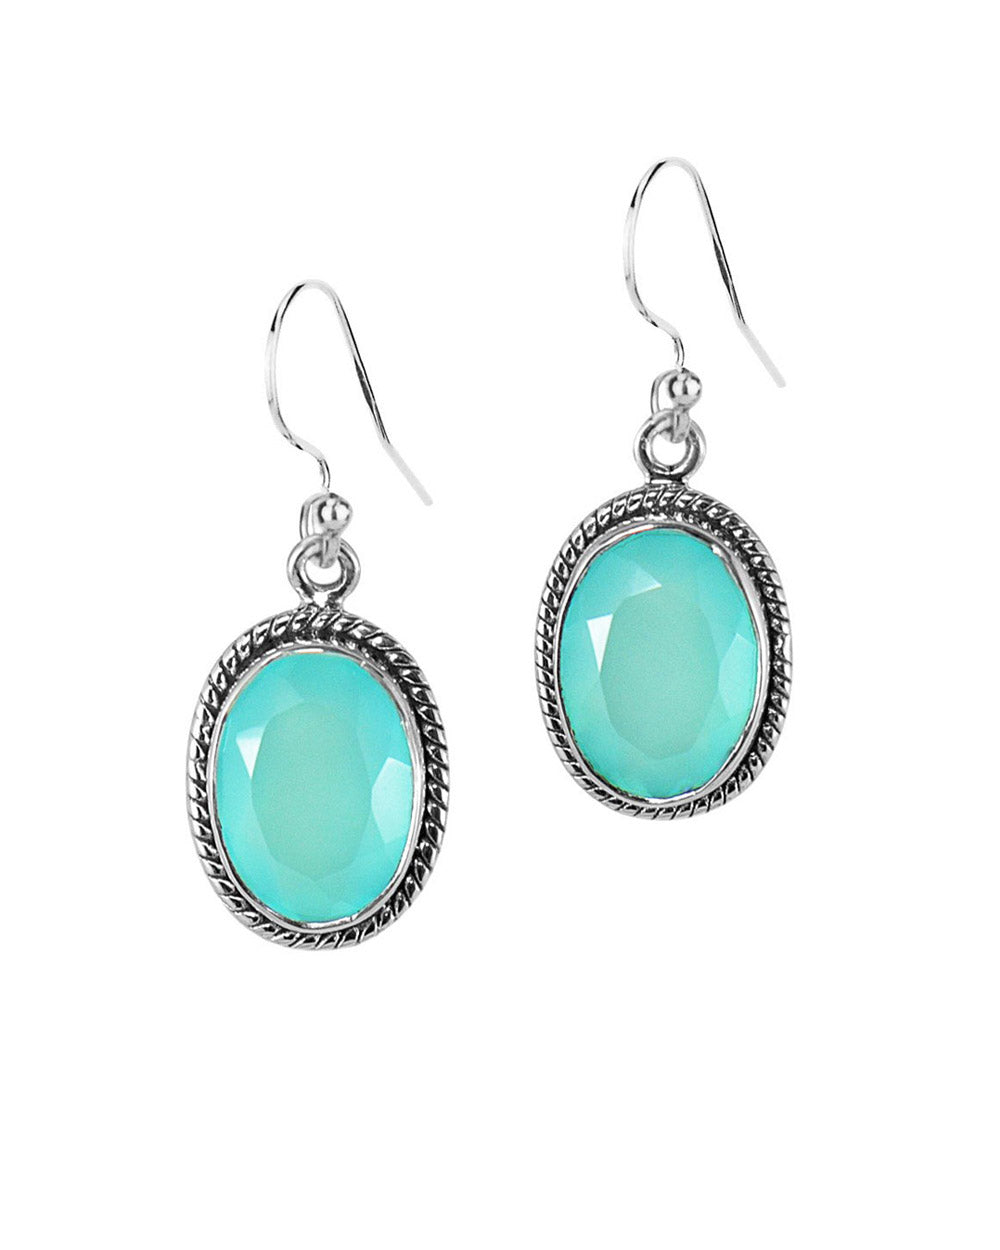 3.00 Ct Oval Natural Peruvian Opal Earrings in Sterling Silver